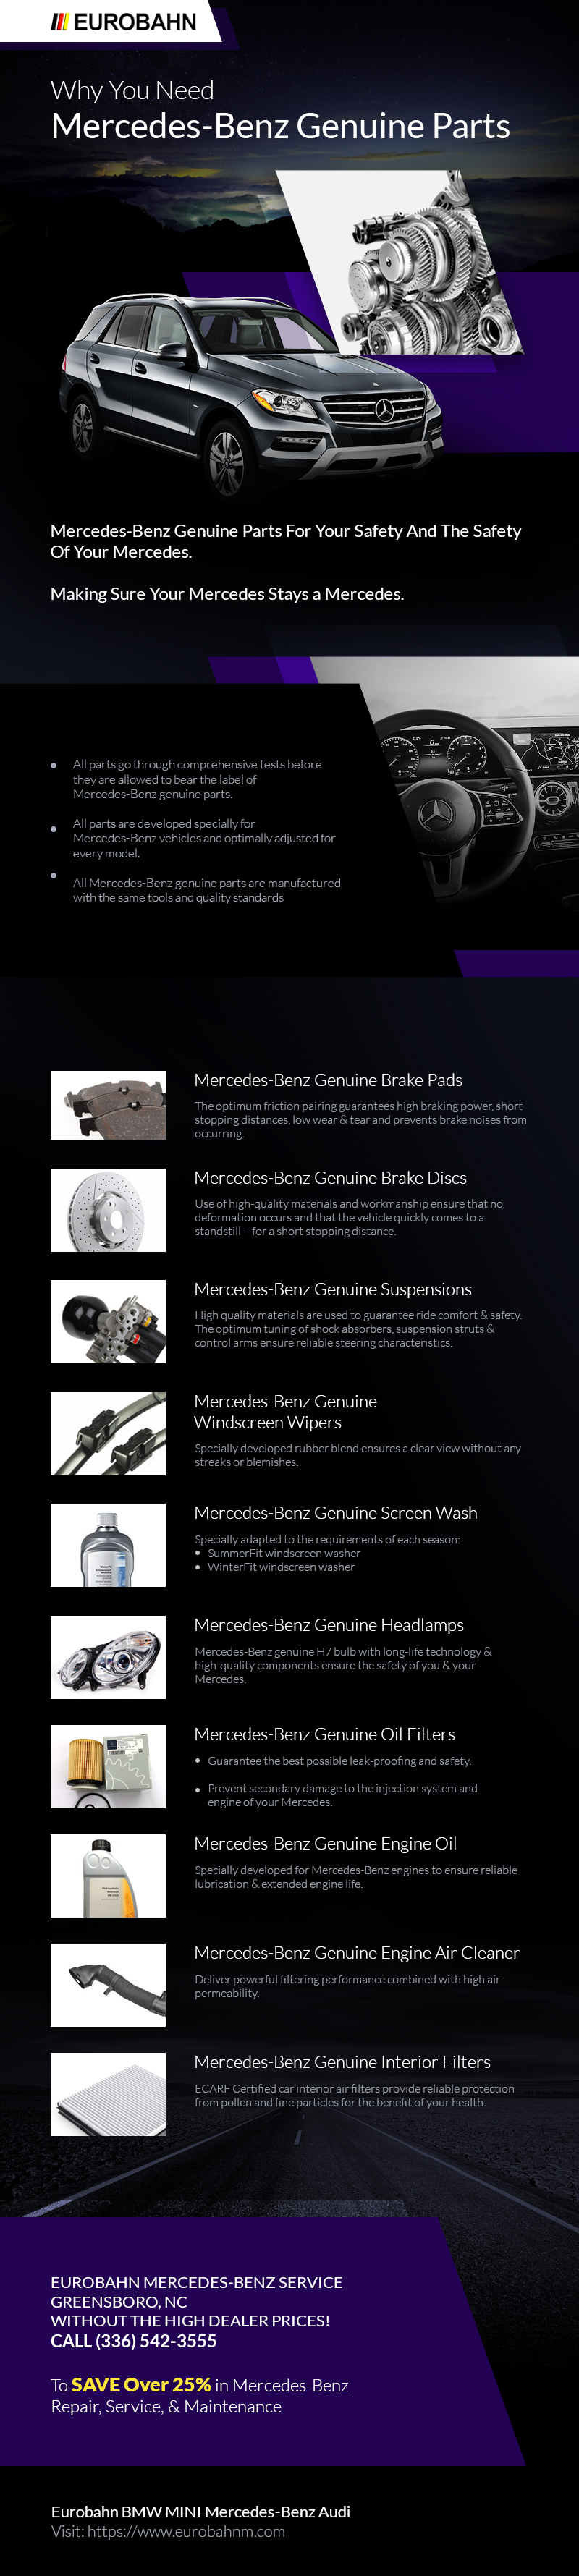 Why You Need Mercedes-Benz Genuine Parts